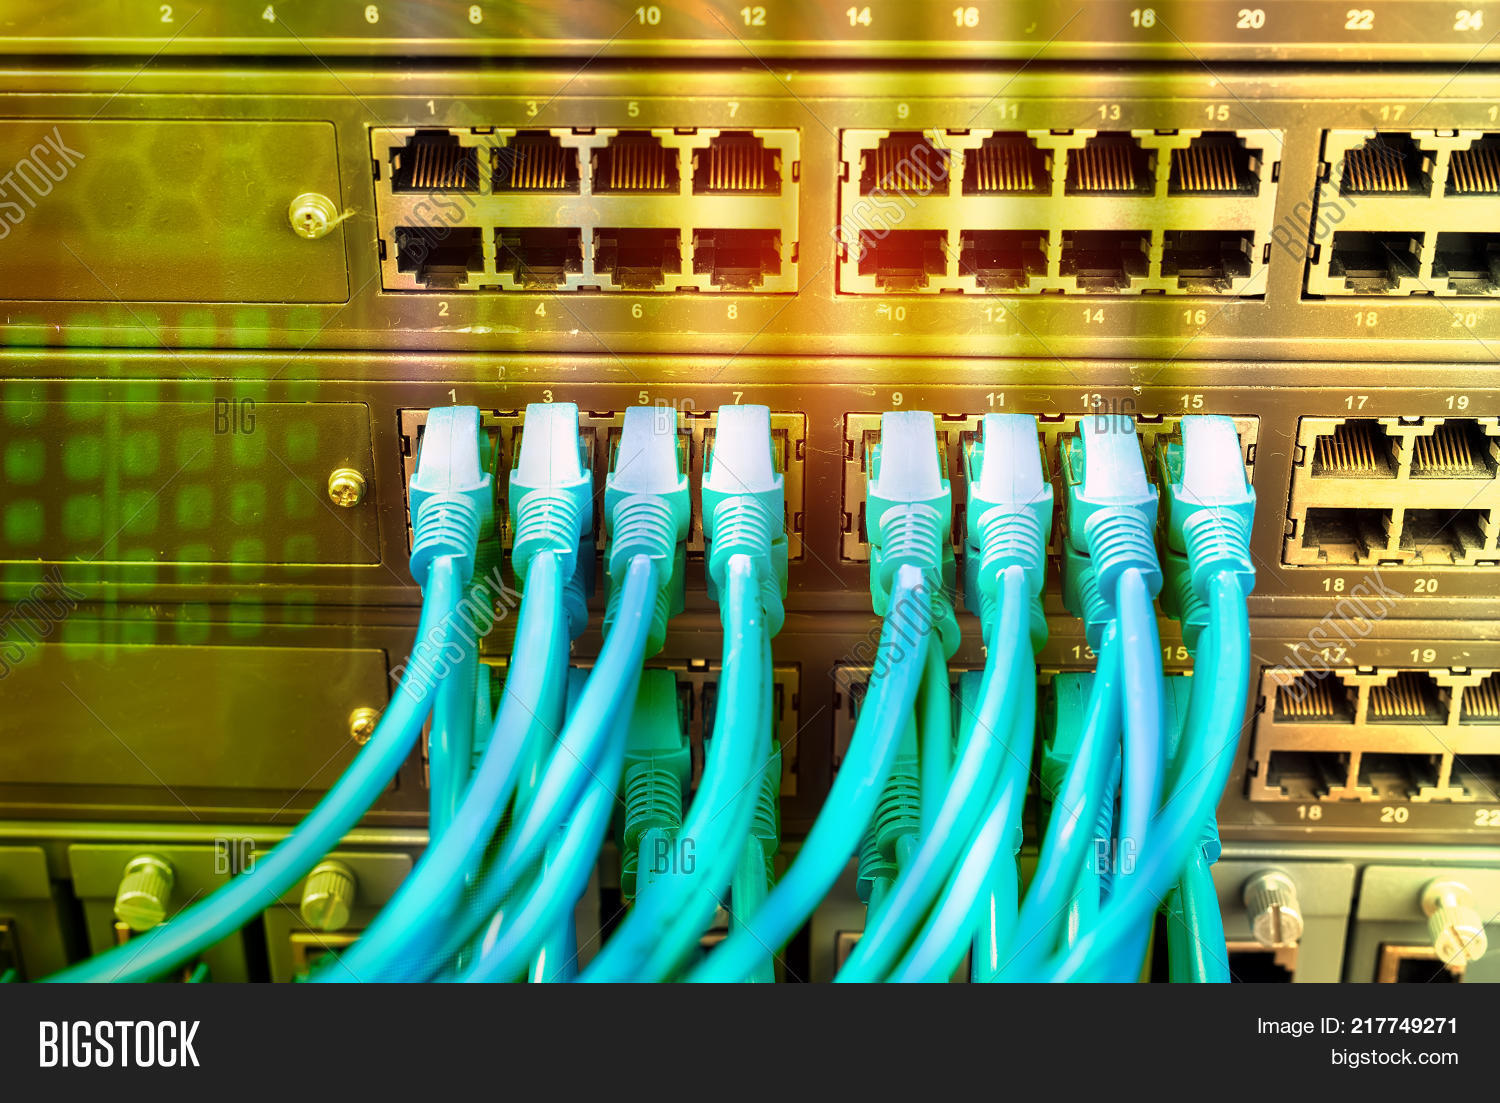 Network Cables Image Photo Free Trial Bigstock Cable Internet Wiring Connected To A Switch And Patch Panelinternet Concept Backgroundsymbol